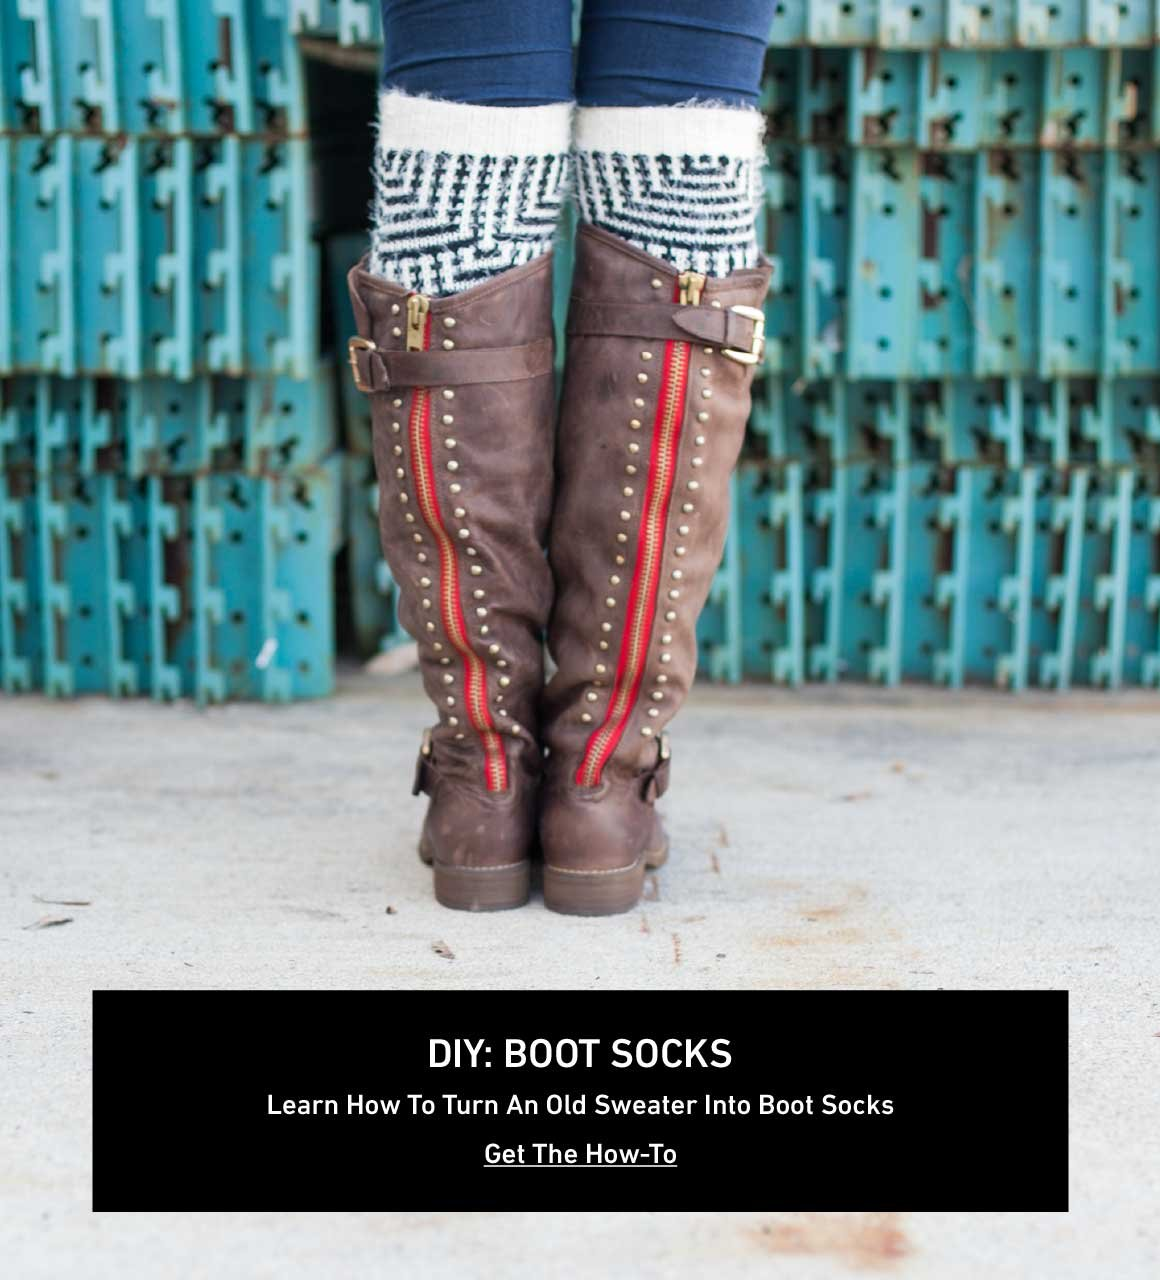 DIY: Boot Socks